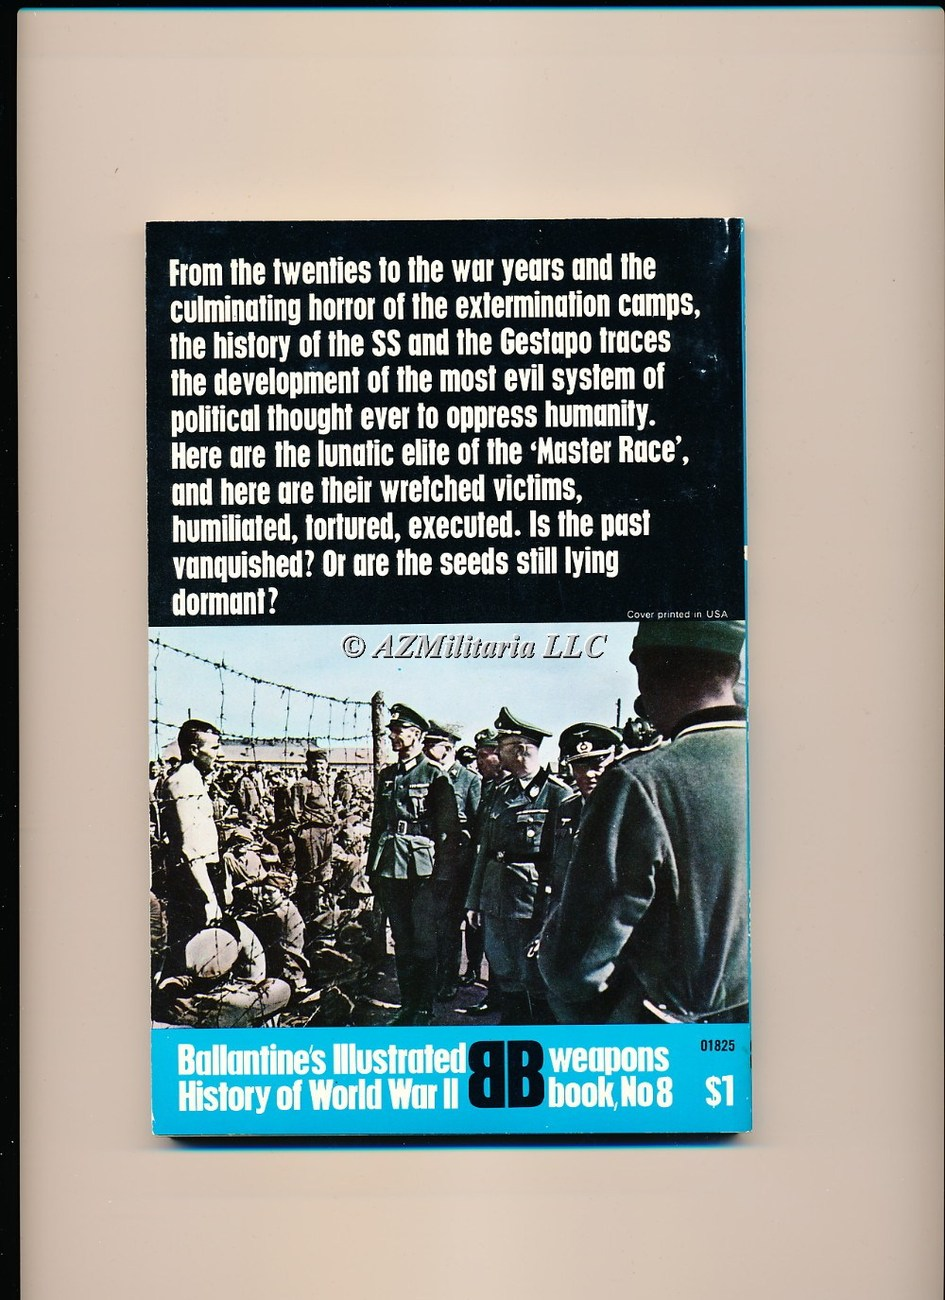 SS and Gestapo: Rule by Terror  (Weapons Book, No 8)